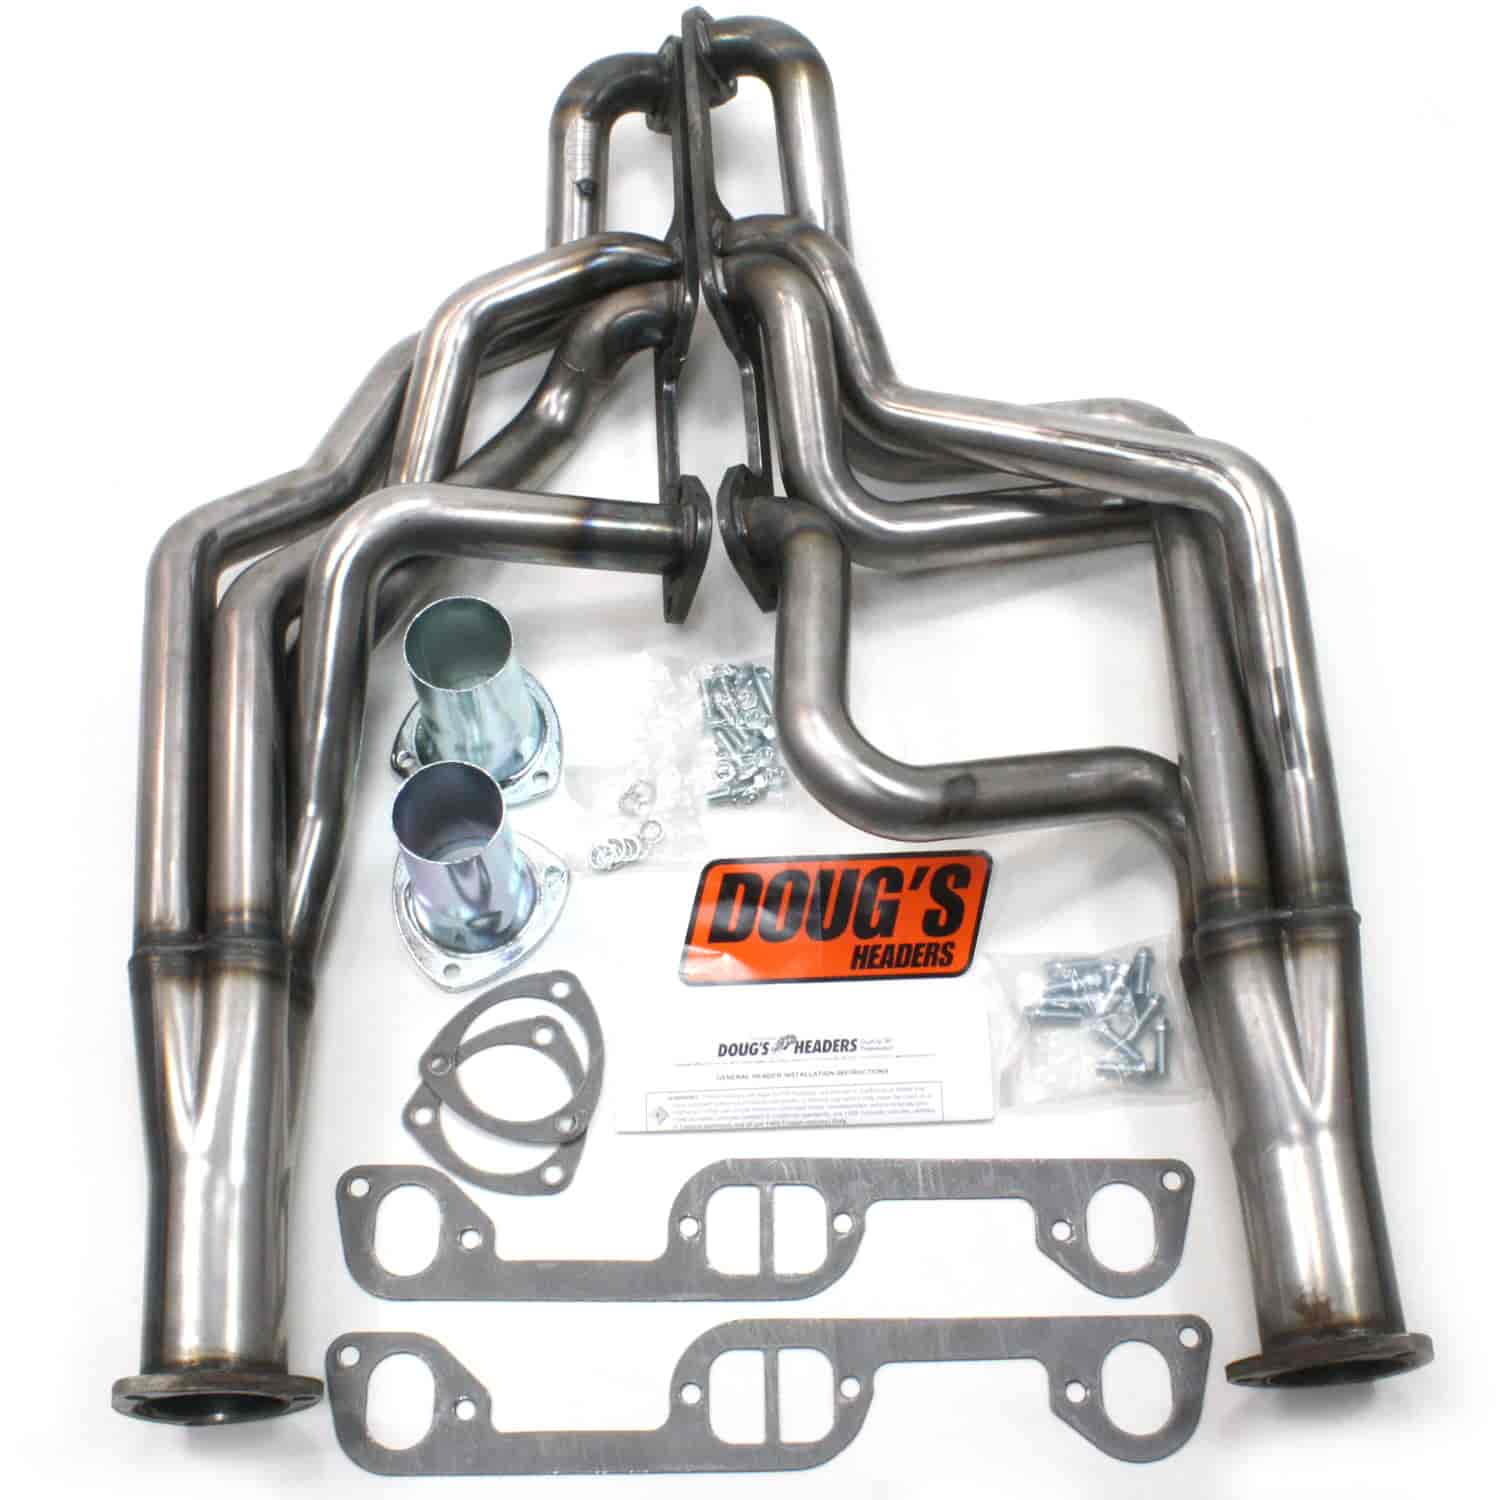 Doug's Headers D521-R